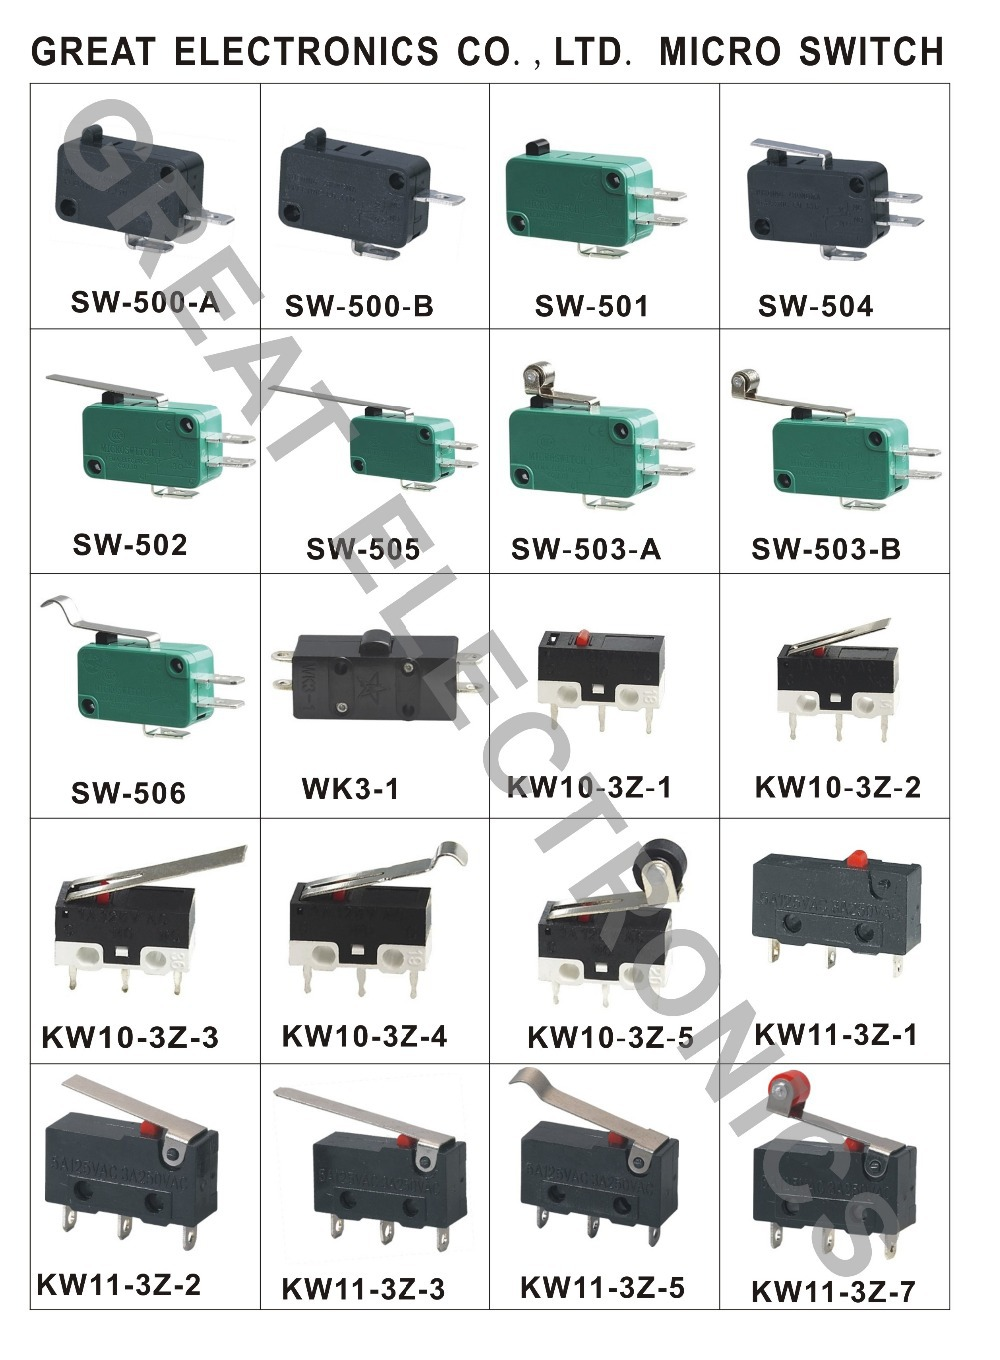 China Supplies 5a 250vac Micro Switch Copper Pins Safty Product Kw12 Microswitch 1